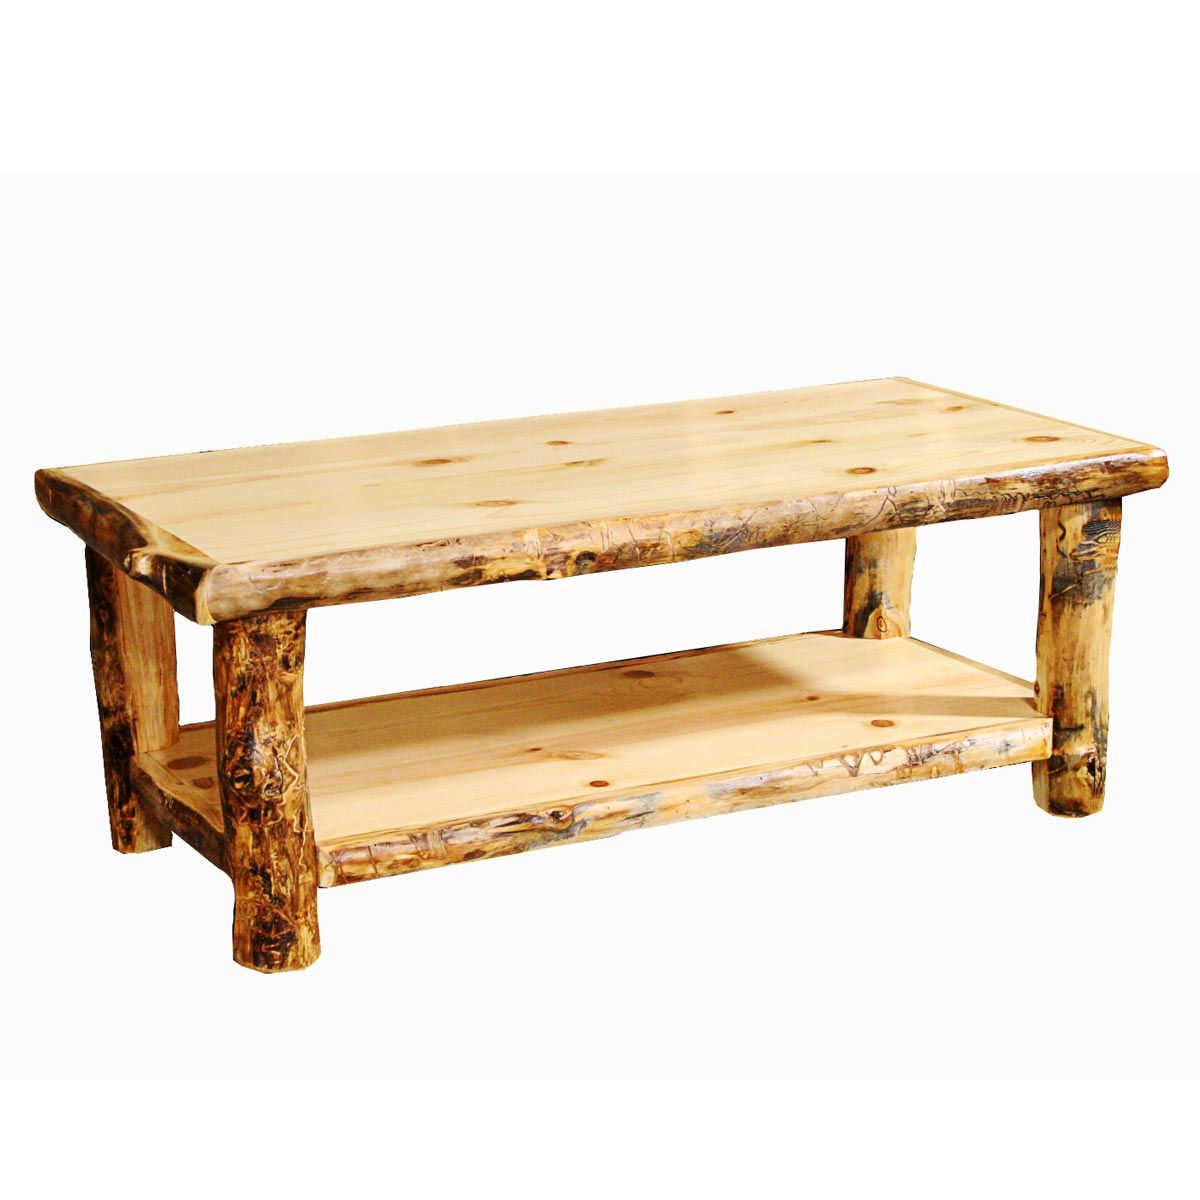 - Rustic Coffee Tables: Aspen Log Trim Coffee Table|Black Forest D¨¦cor